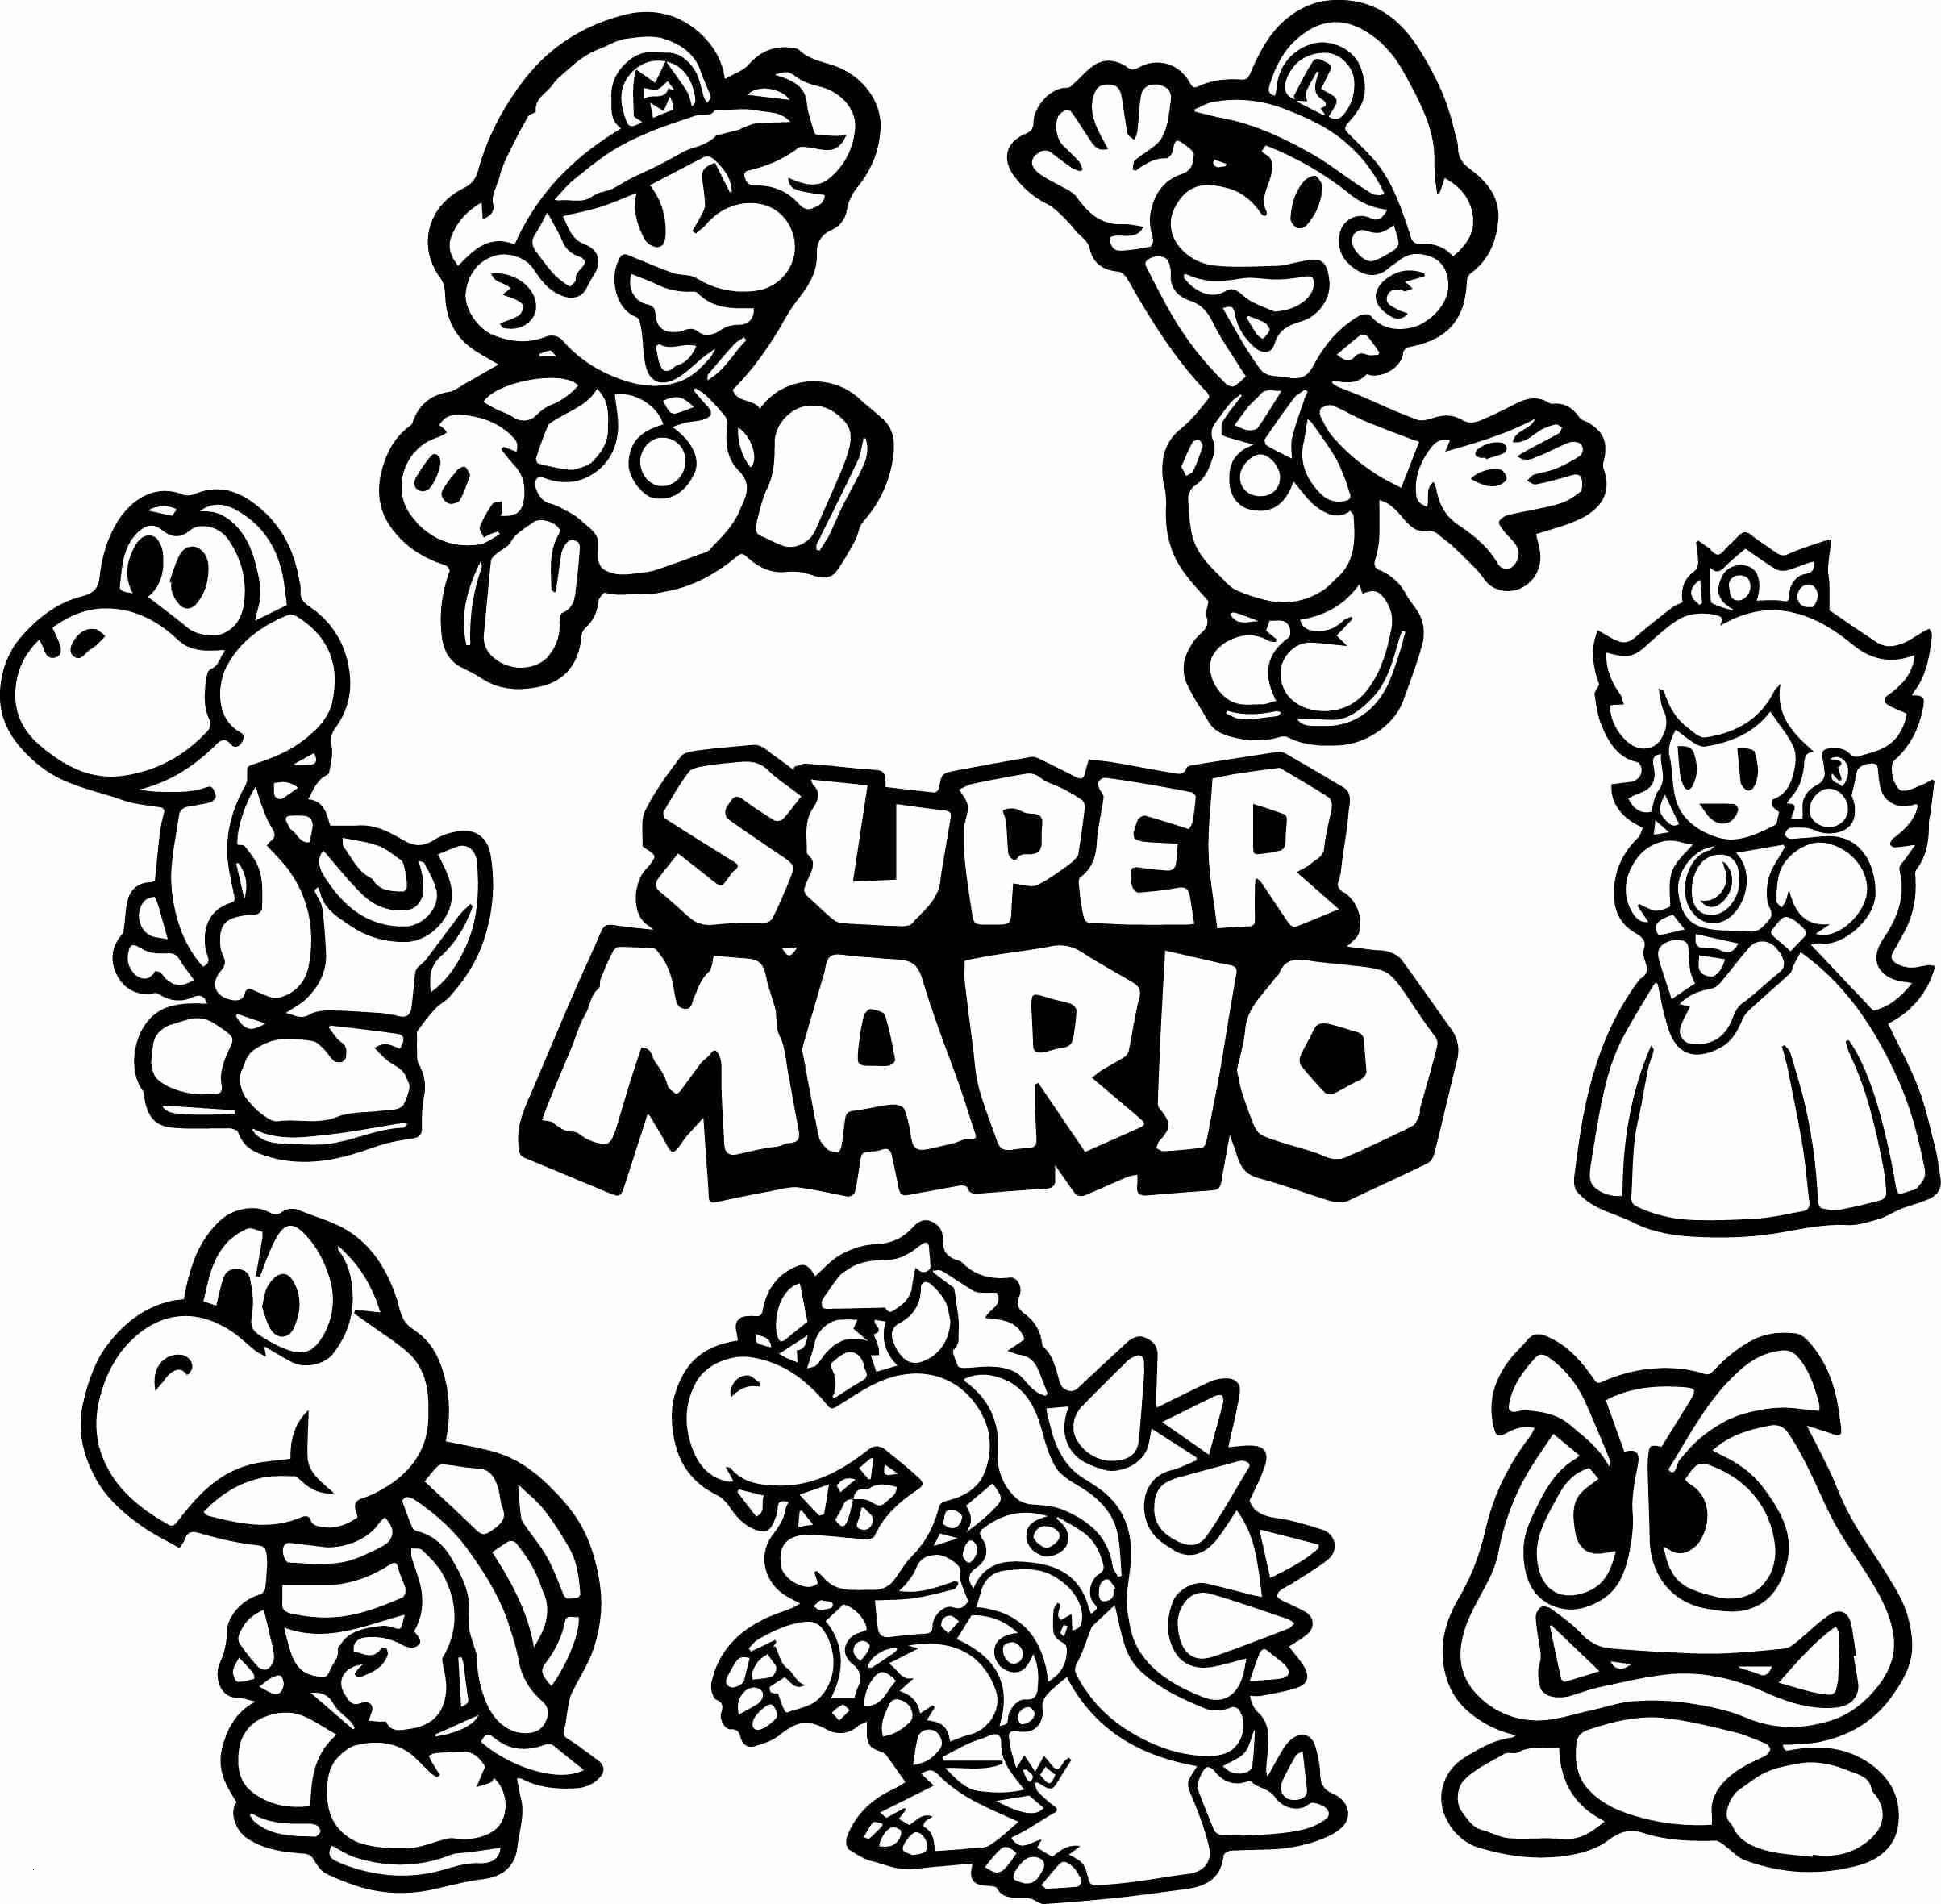 Super Mario Coloring Page Elegant Gallery 37 Super Mario Kart Ausmalbilder Scoredatscore Super Mario Coloring Pages Mario Coloring Pages Super Coloring Pages